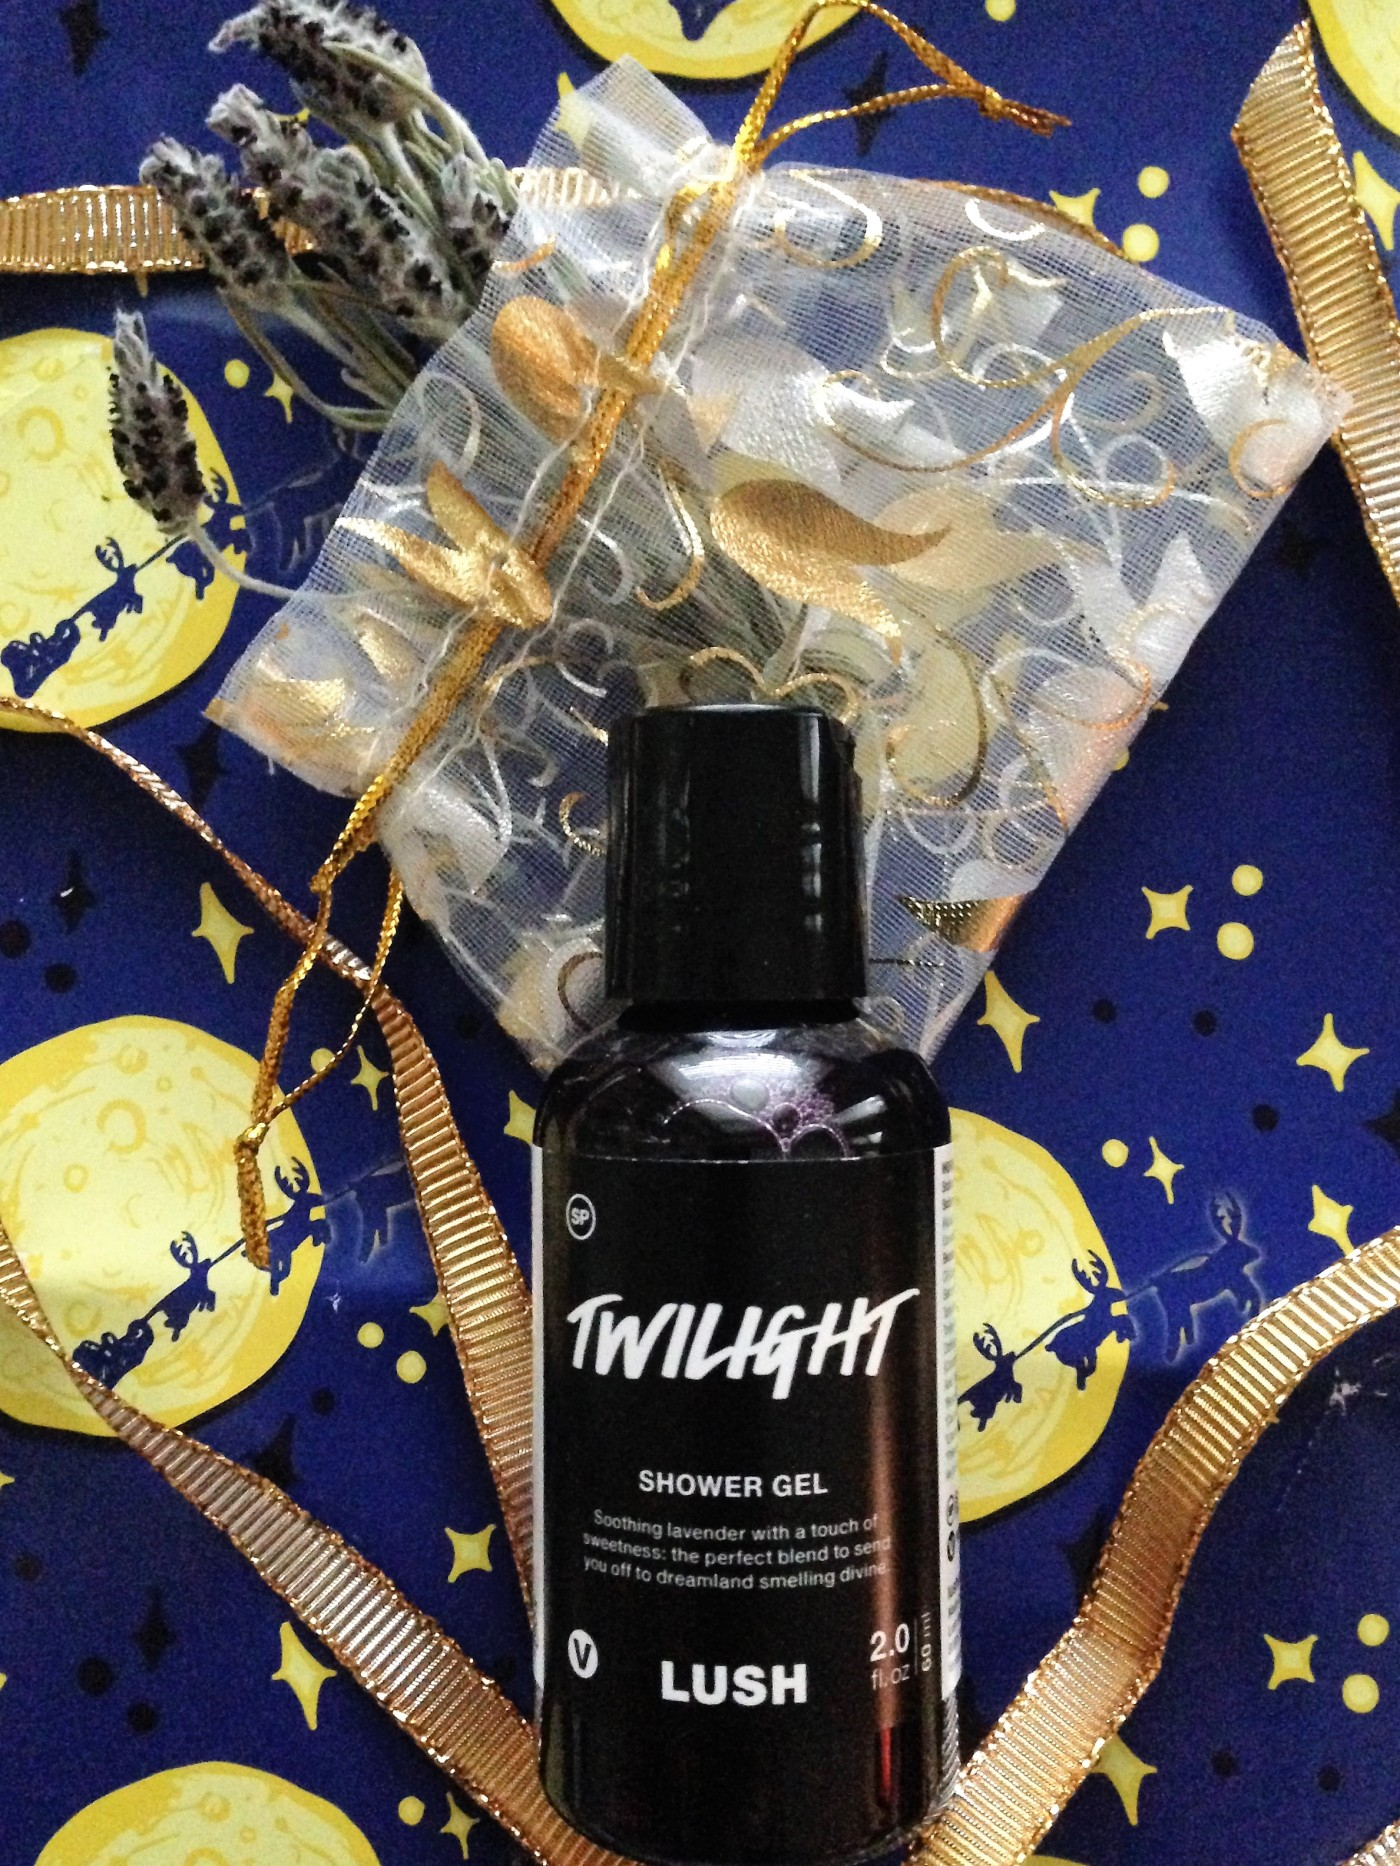 LUSH The night before Christmas gift set – Reviewed by spacey